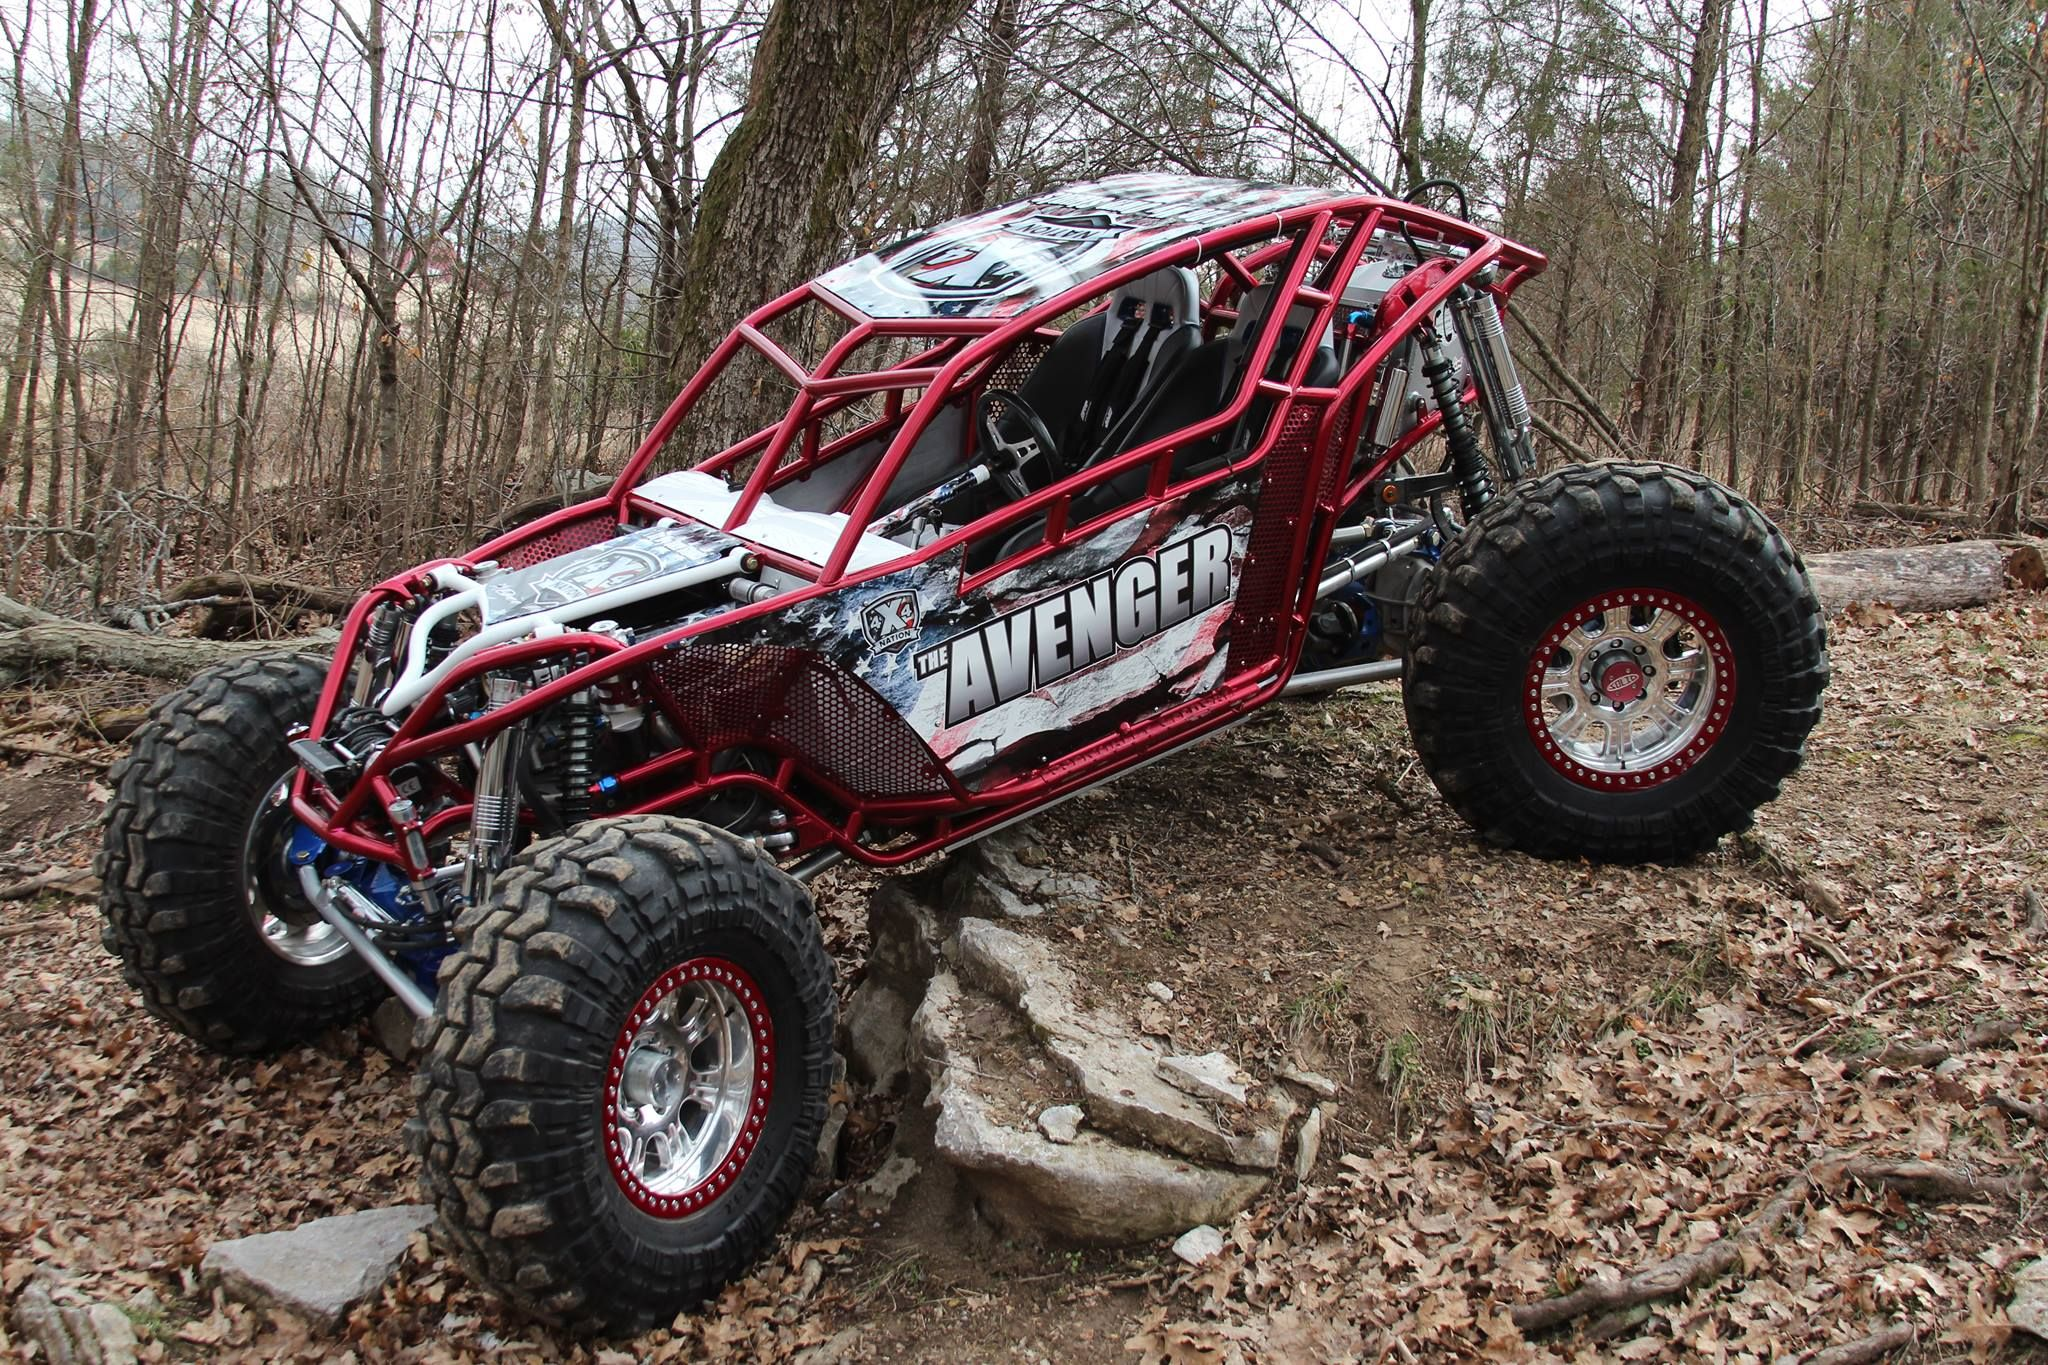 Buggies For Sale >> Our New Buggy, The Avenger! | Rock Crawlers - Diesels - Off Roading | Pinterest | 4x4, Daihatsu ...